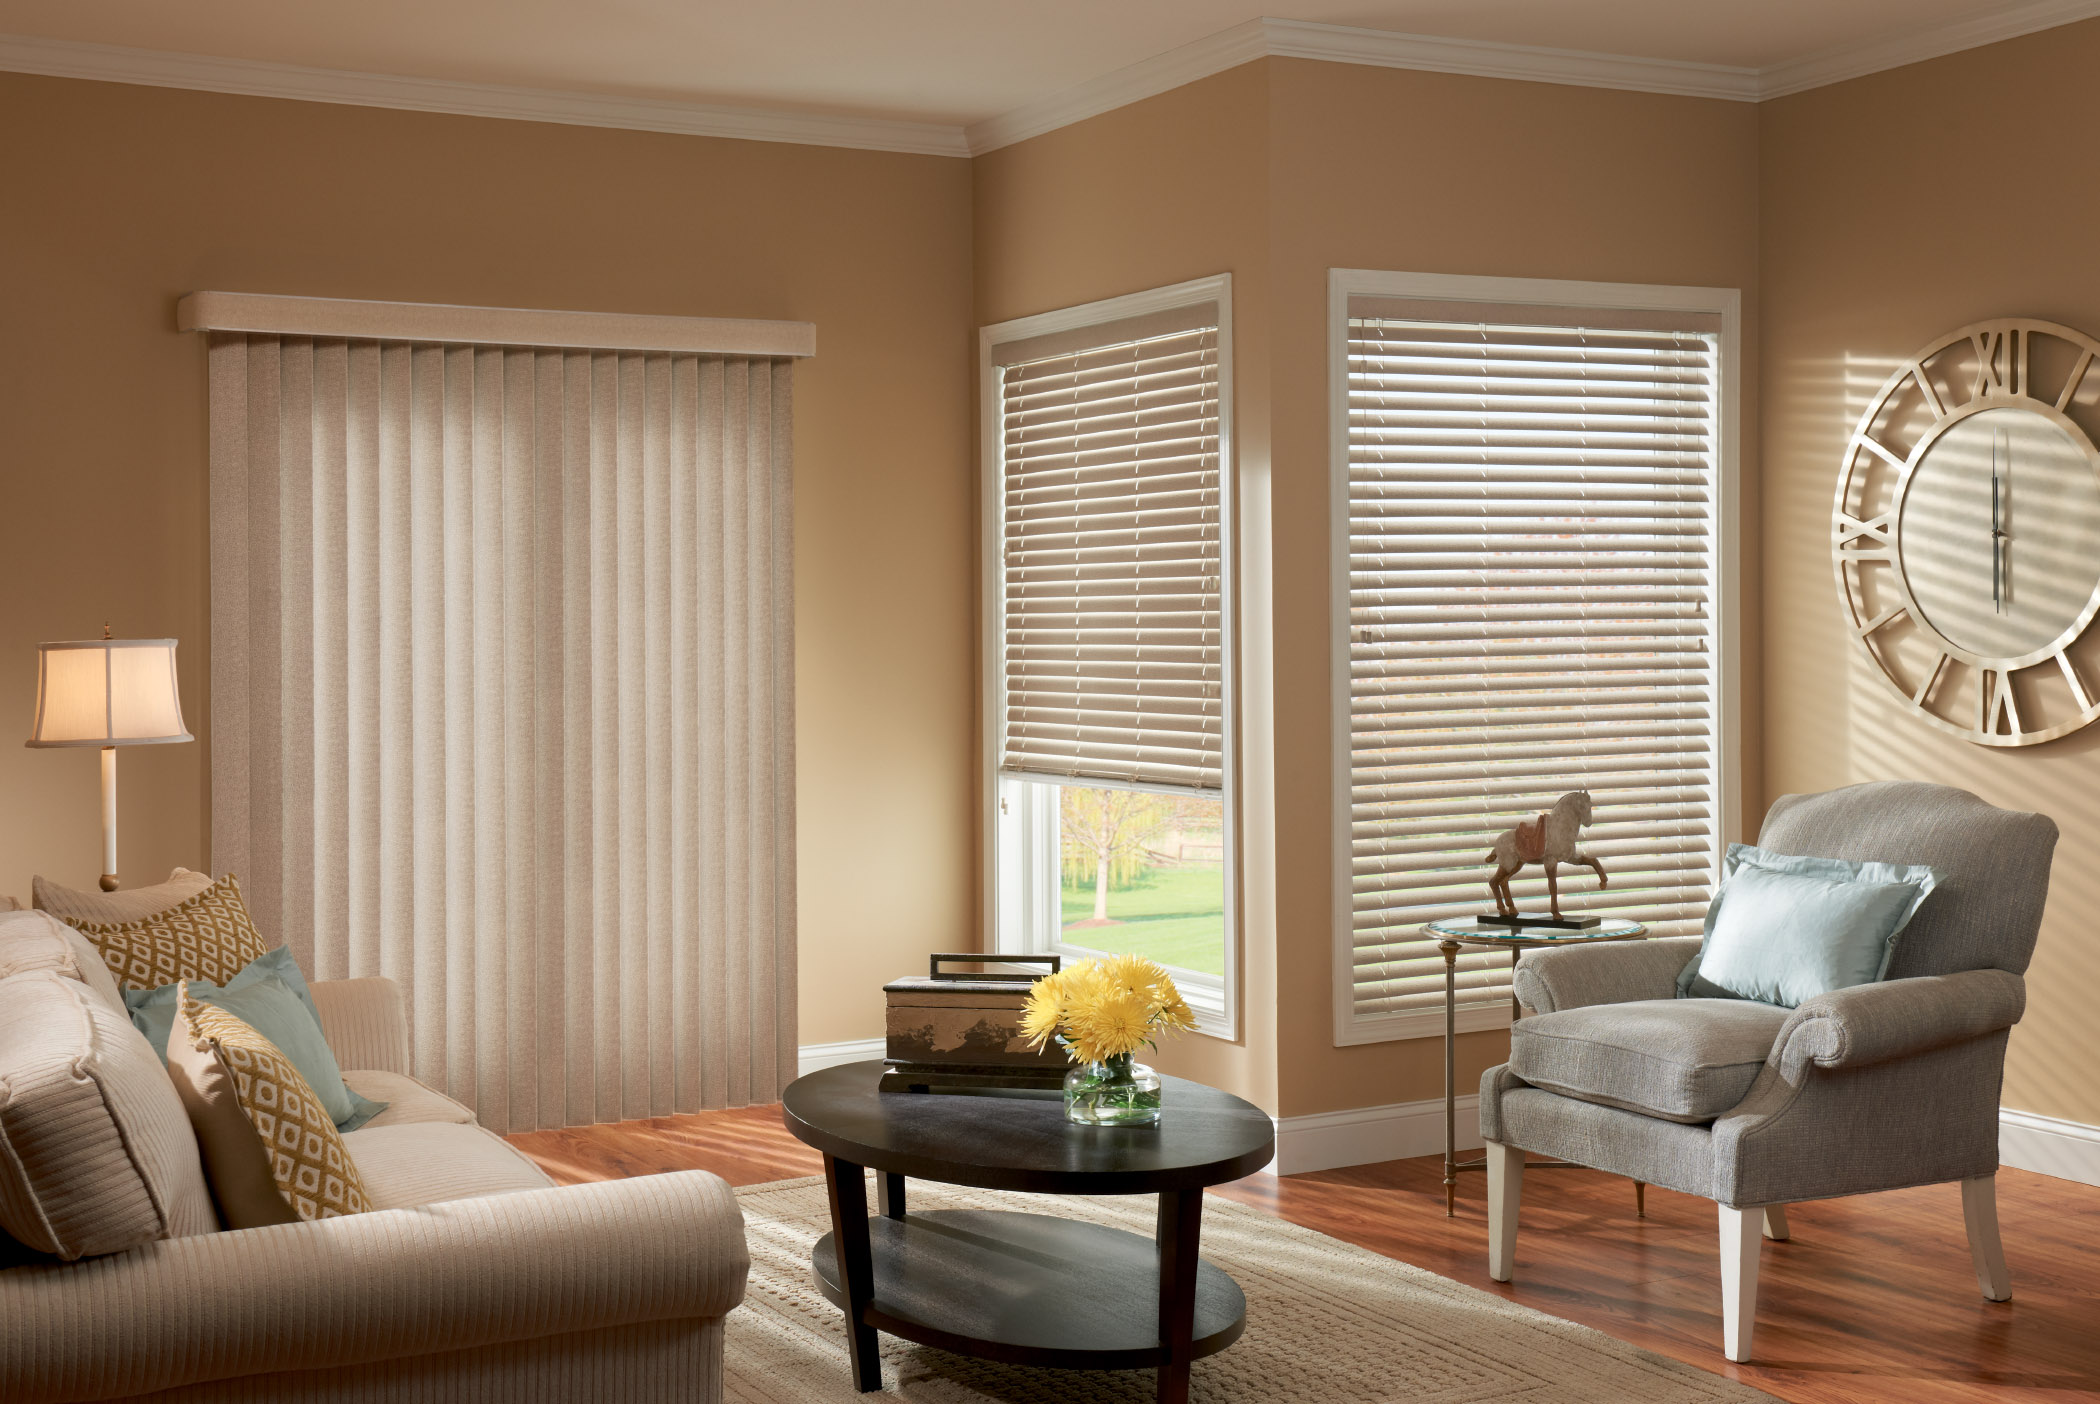 Window Treatments With Blinds - Principlesofafreesociety